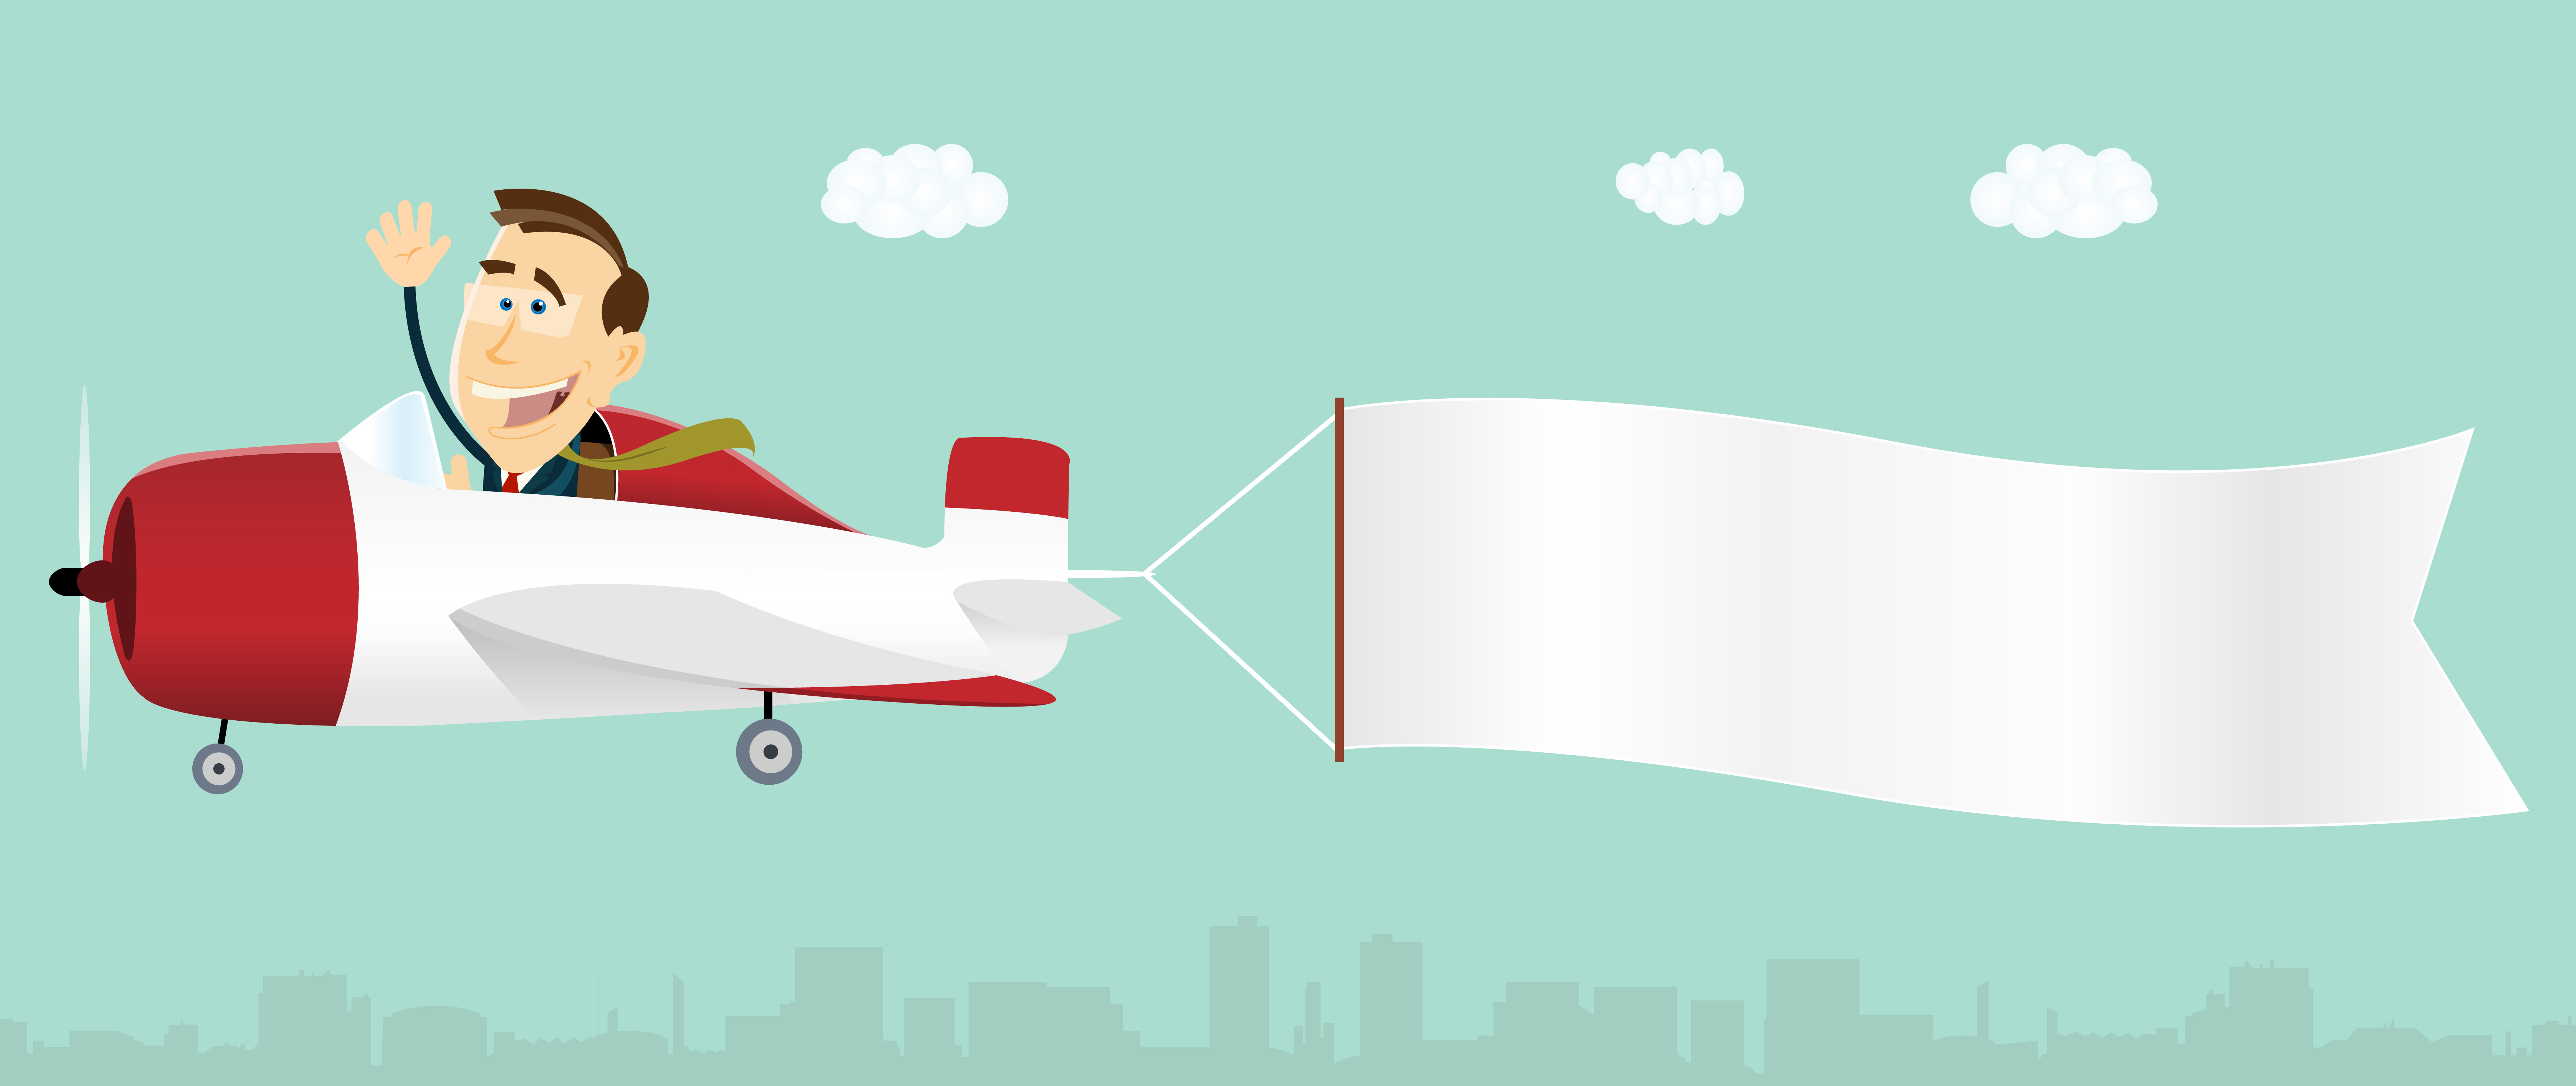 Wide banners clipart plane themes image Airplane Banner Free Vector Art - (32,181 Free Downloads) image